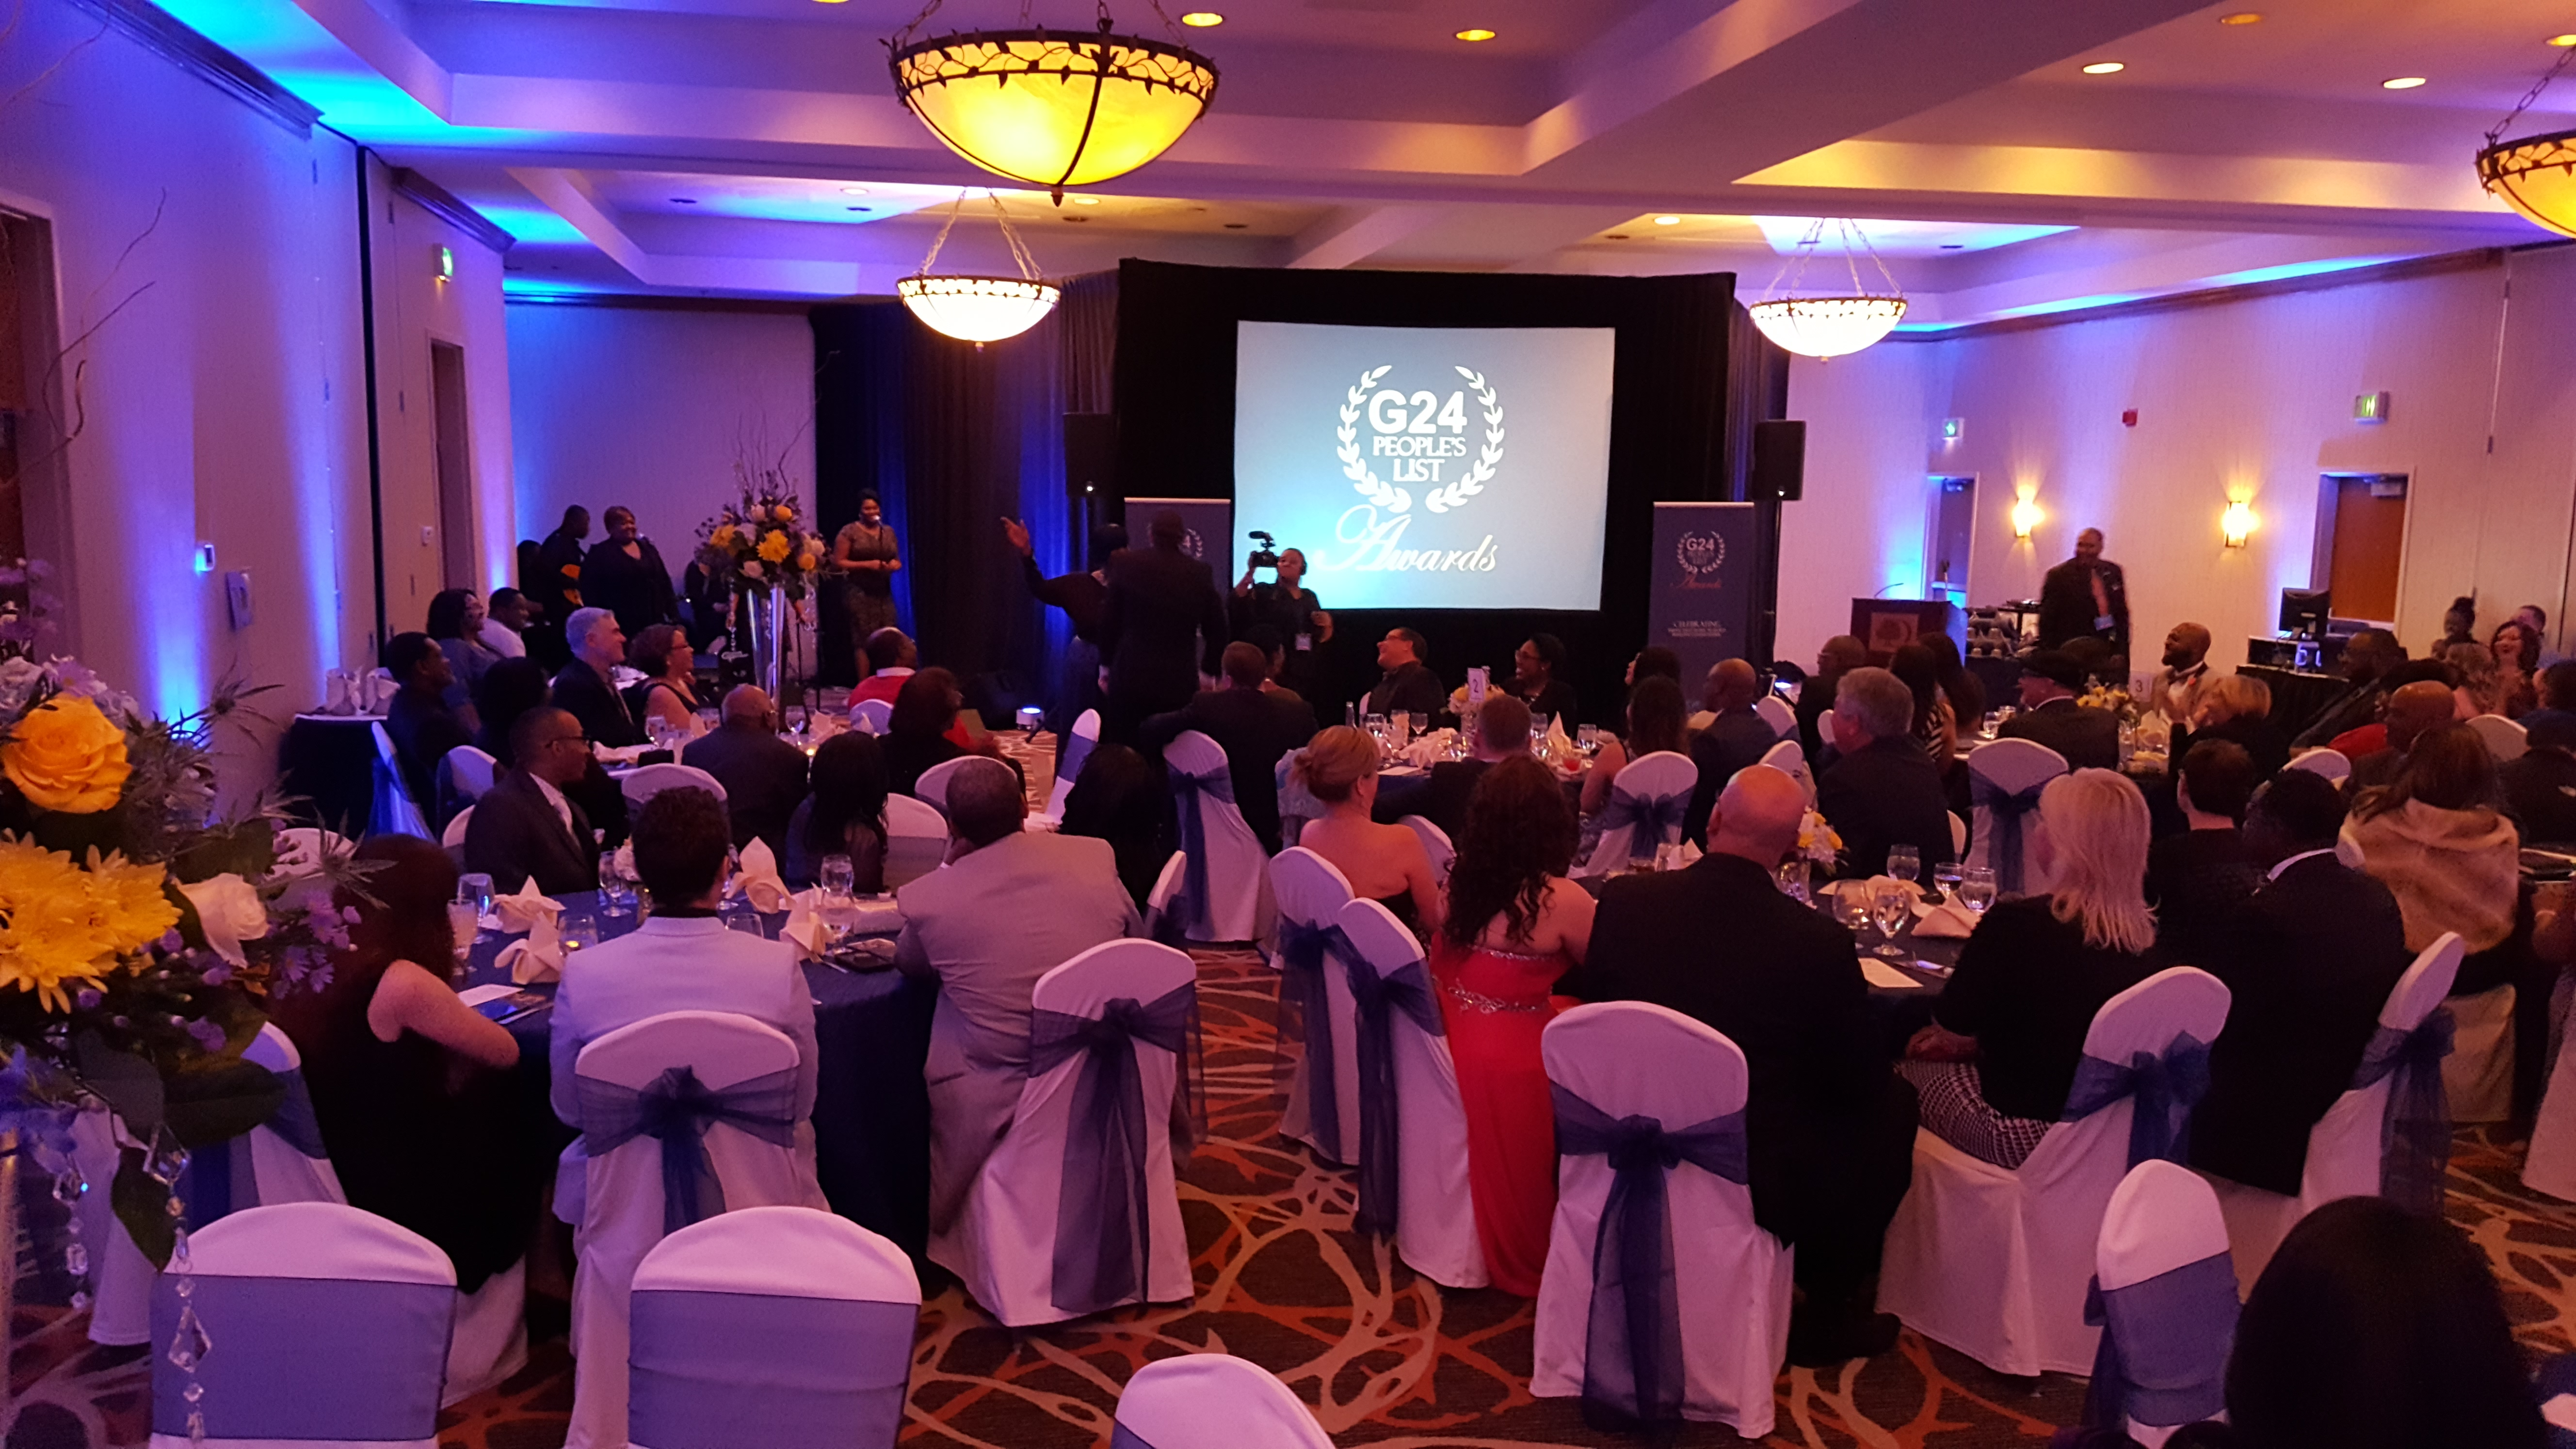 Greate 24 Awards Event 1-23-16